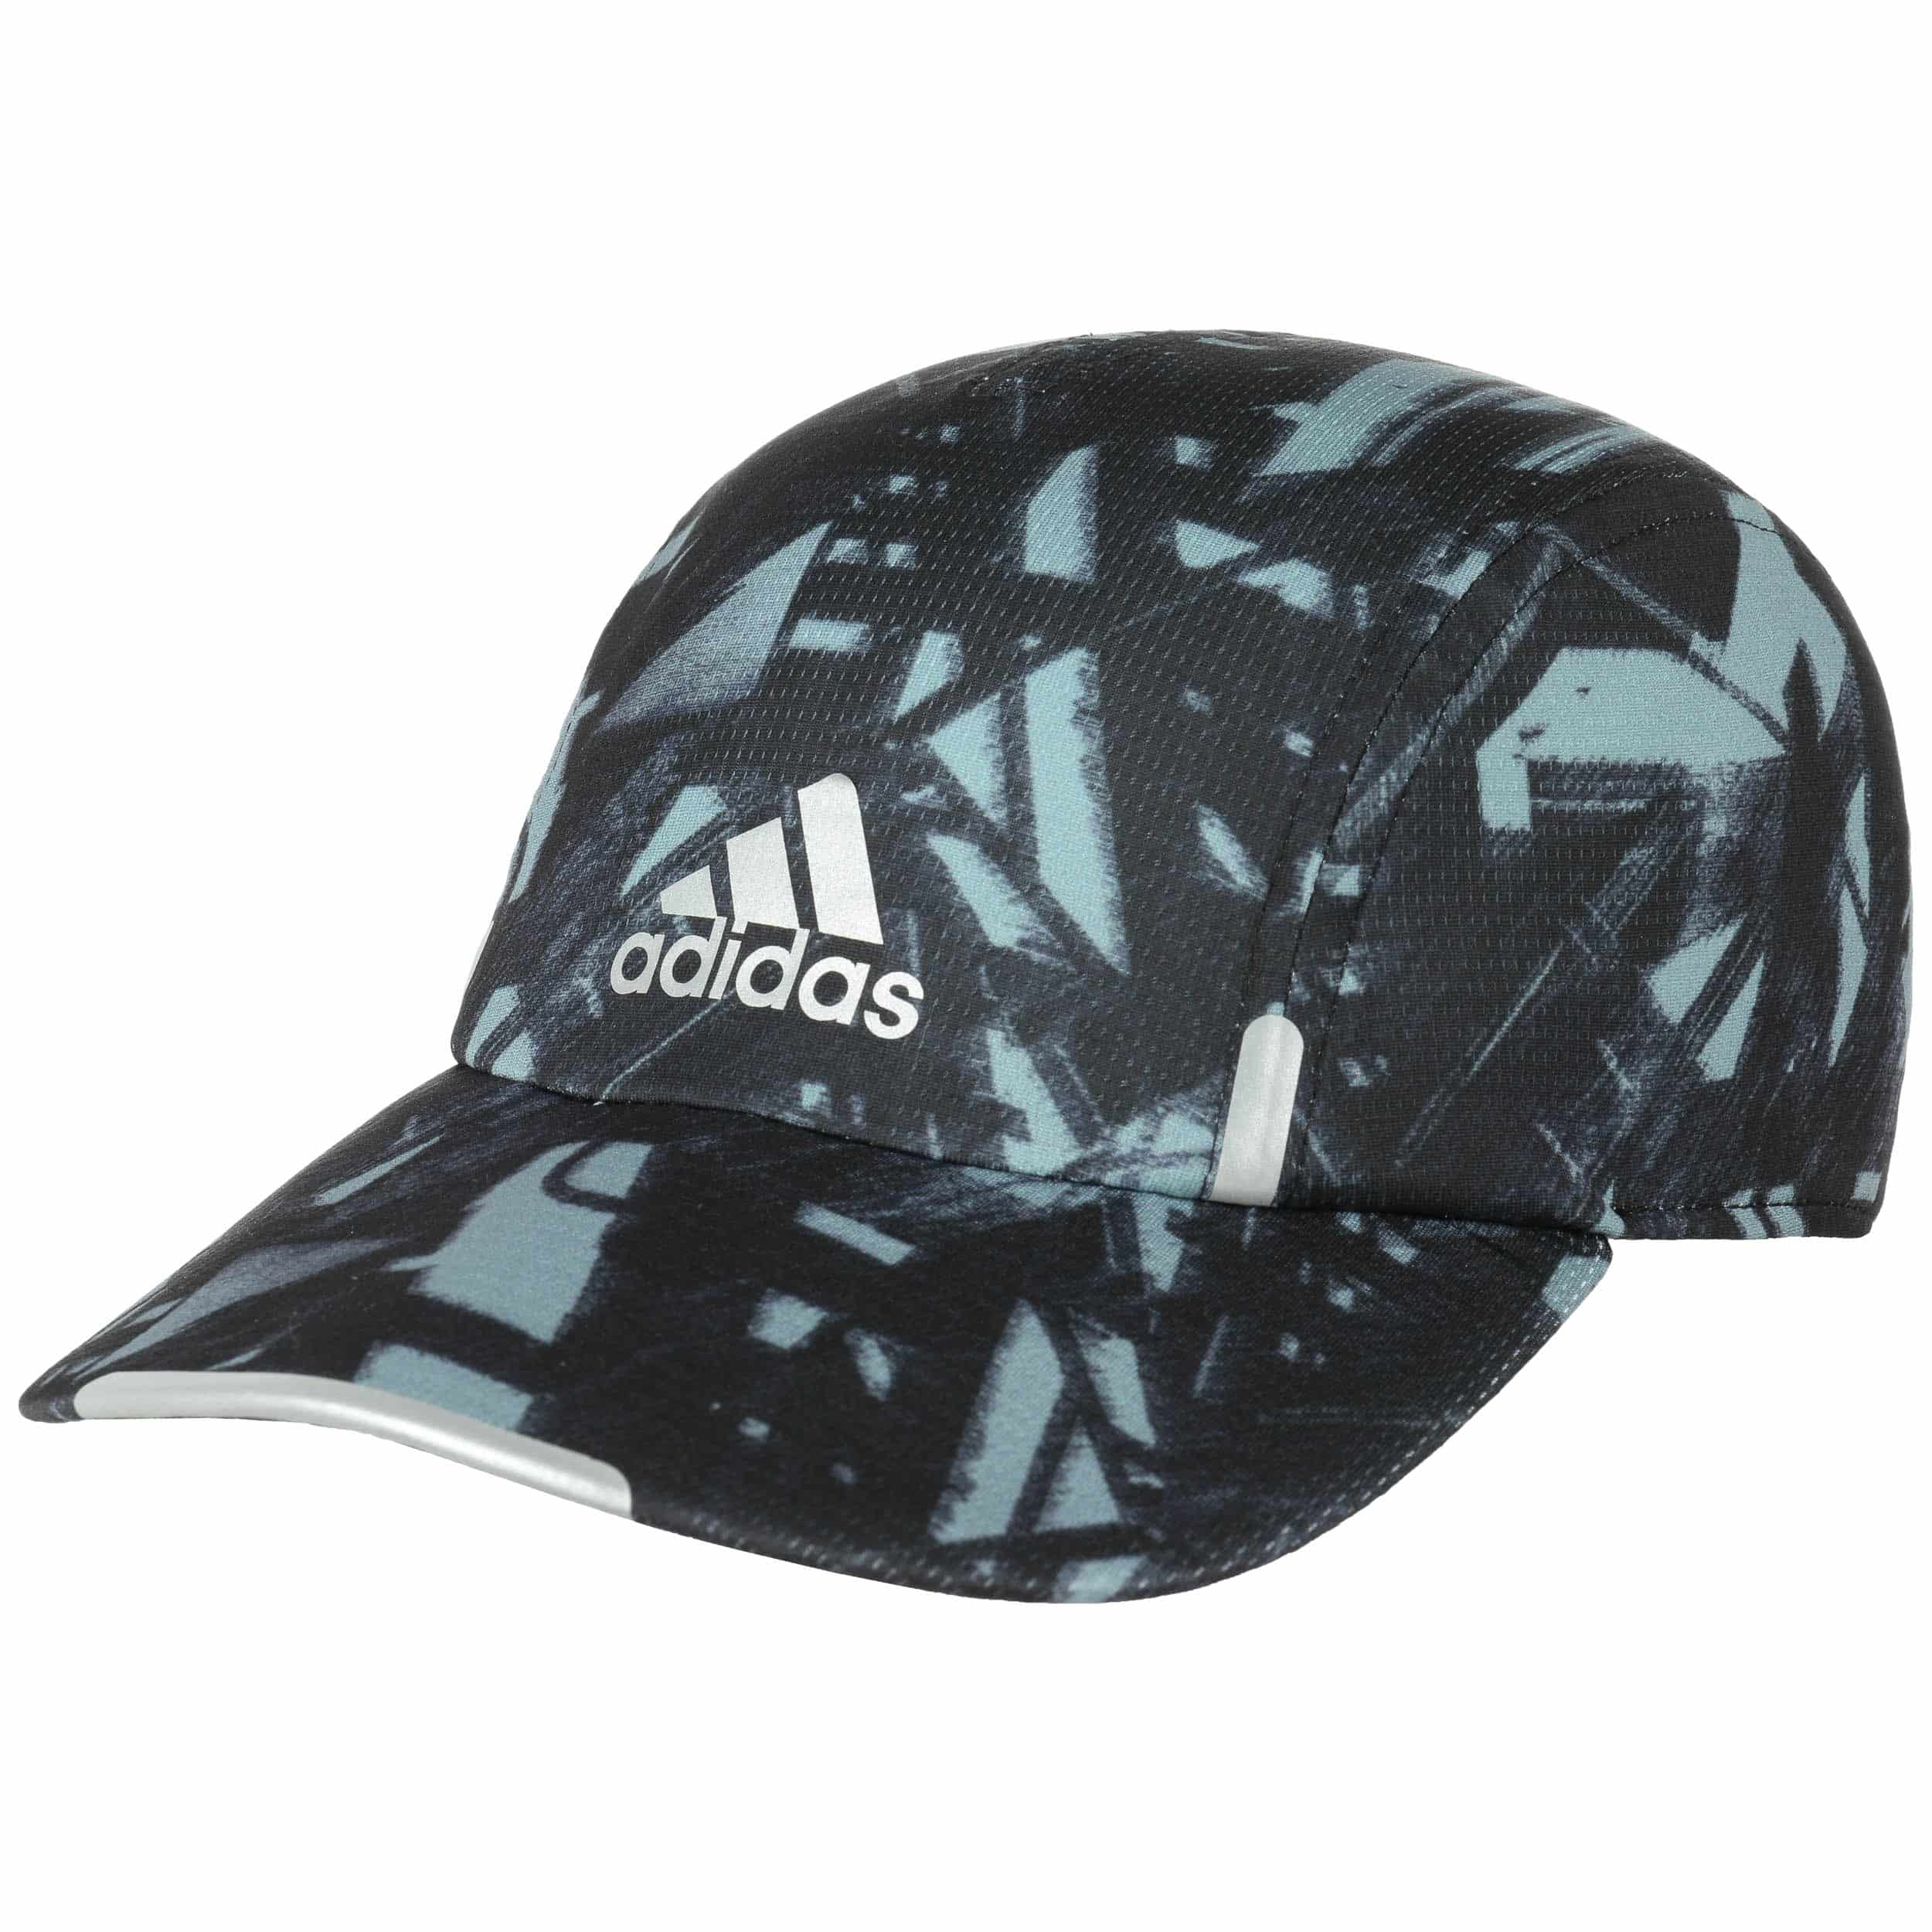 premium selection 622f0 69b6e Climacool Graphic Running Cap by adidas